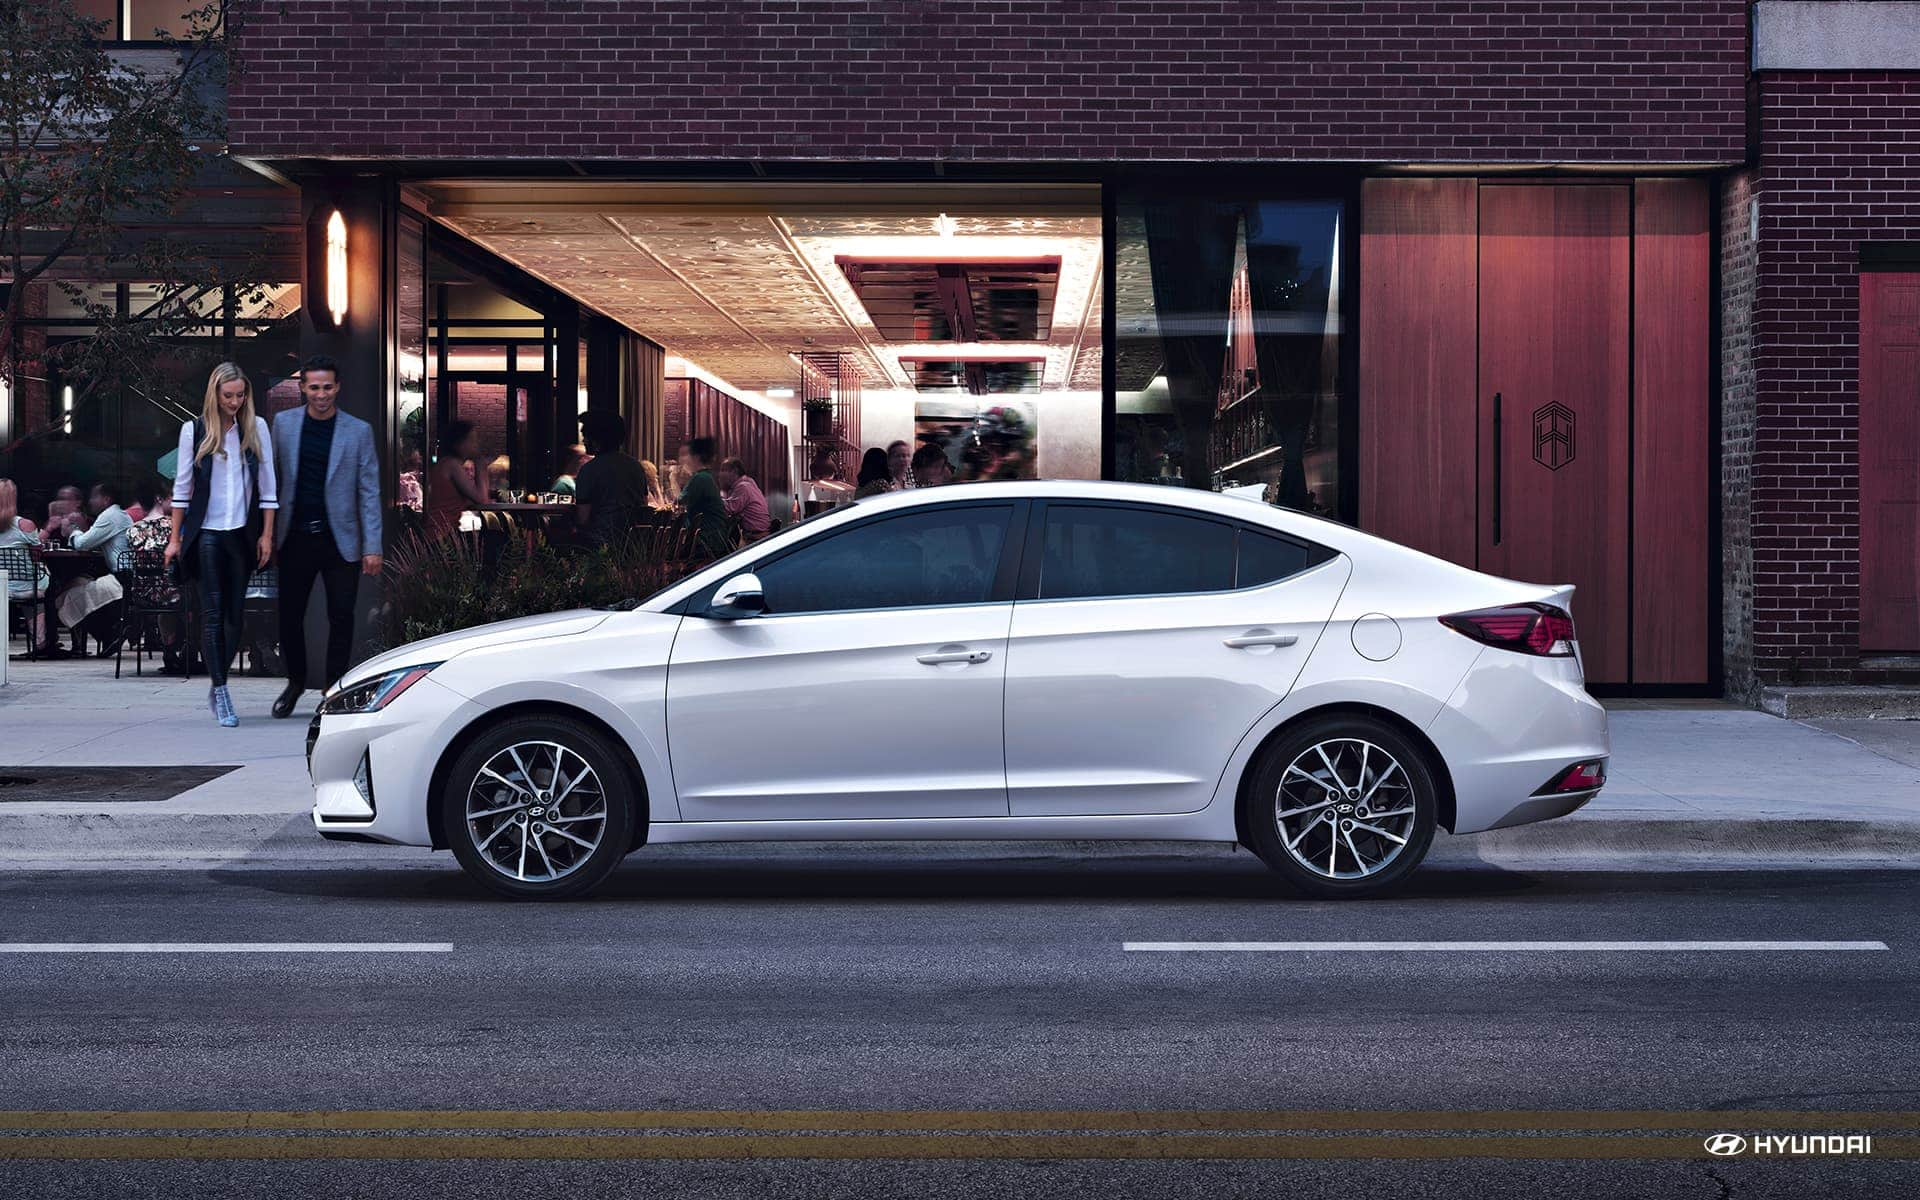 2019 Hyundai Elantra White Exterior Side Profile